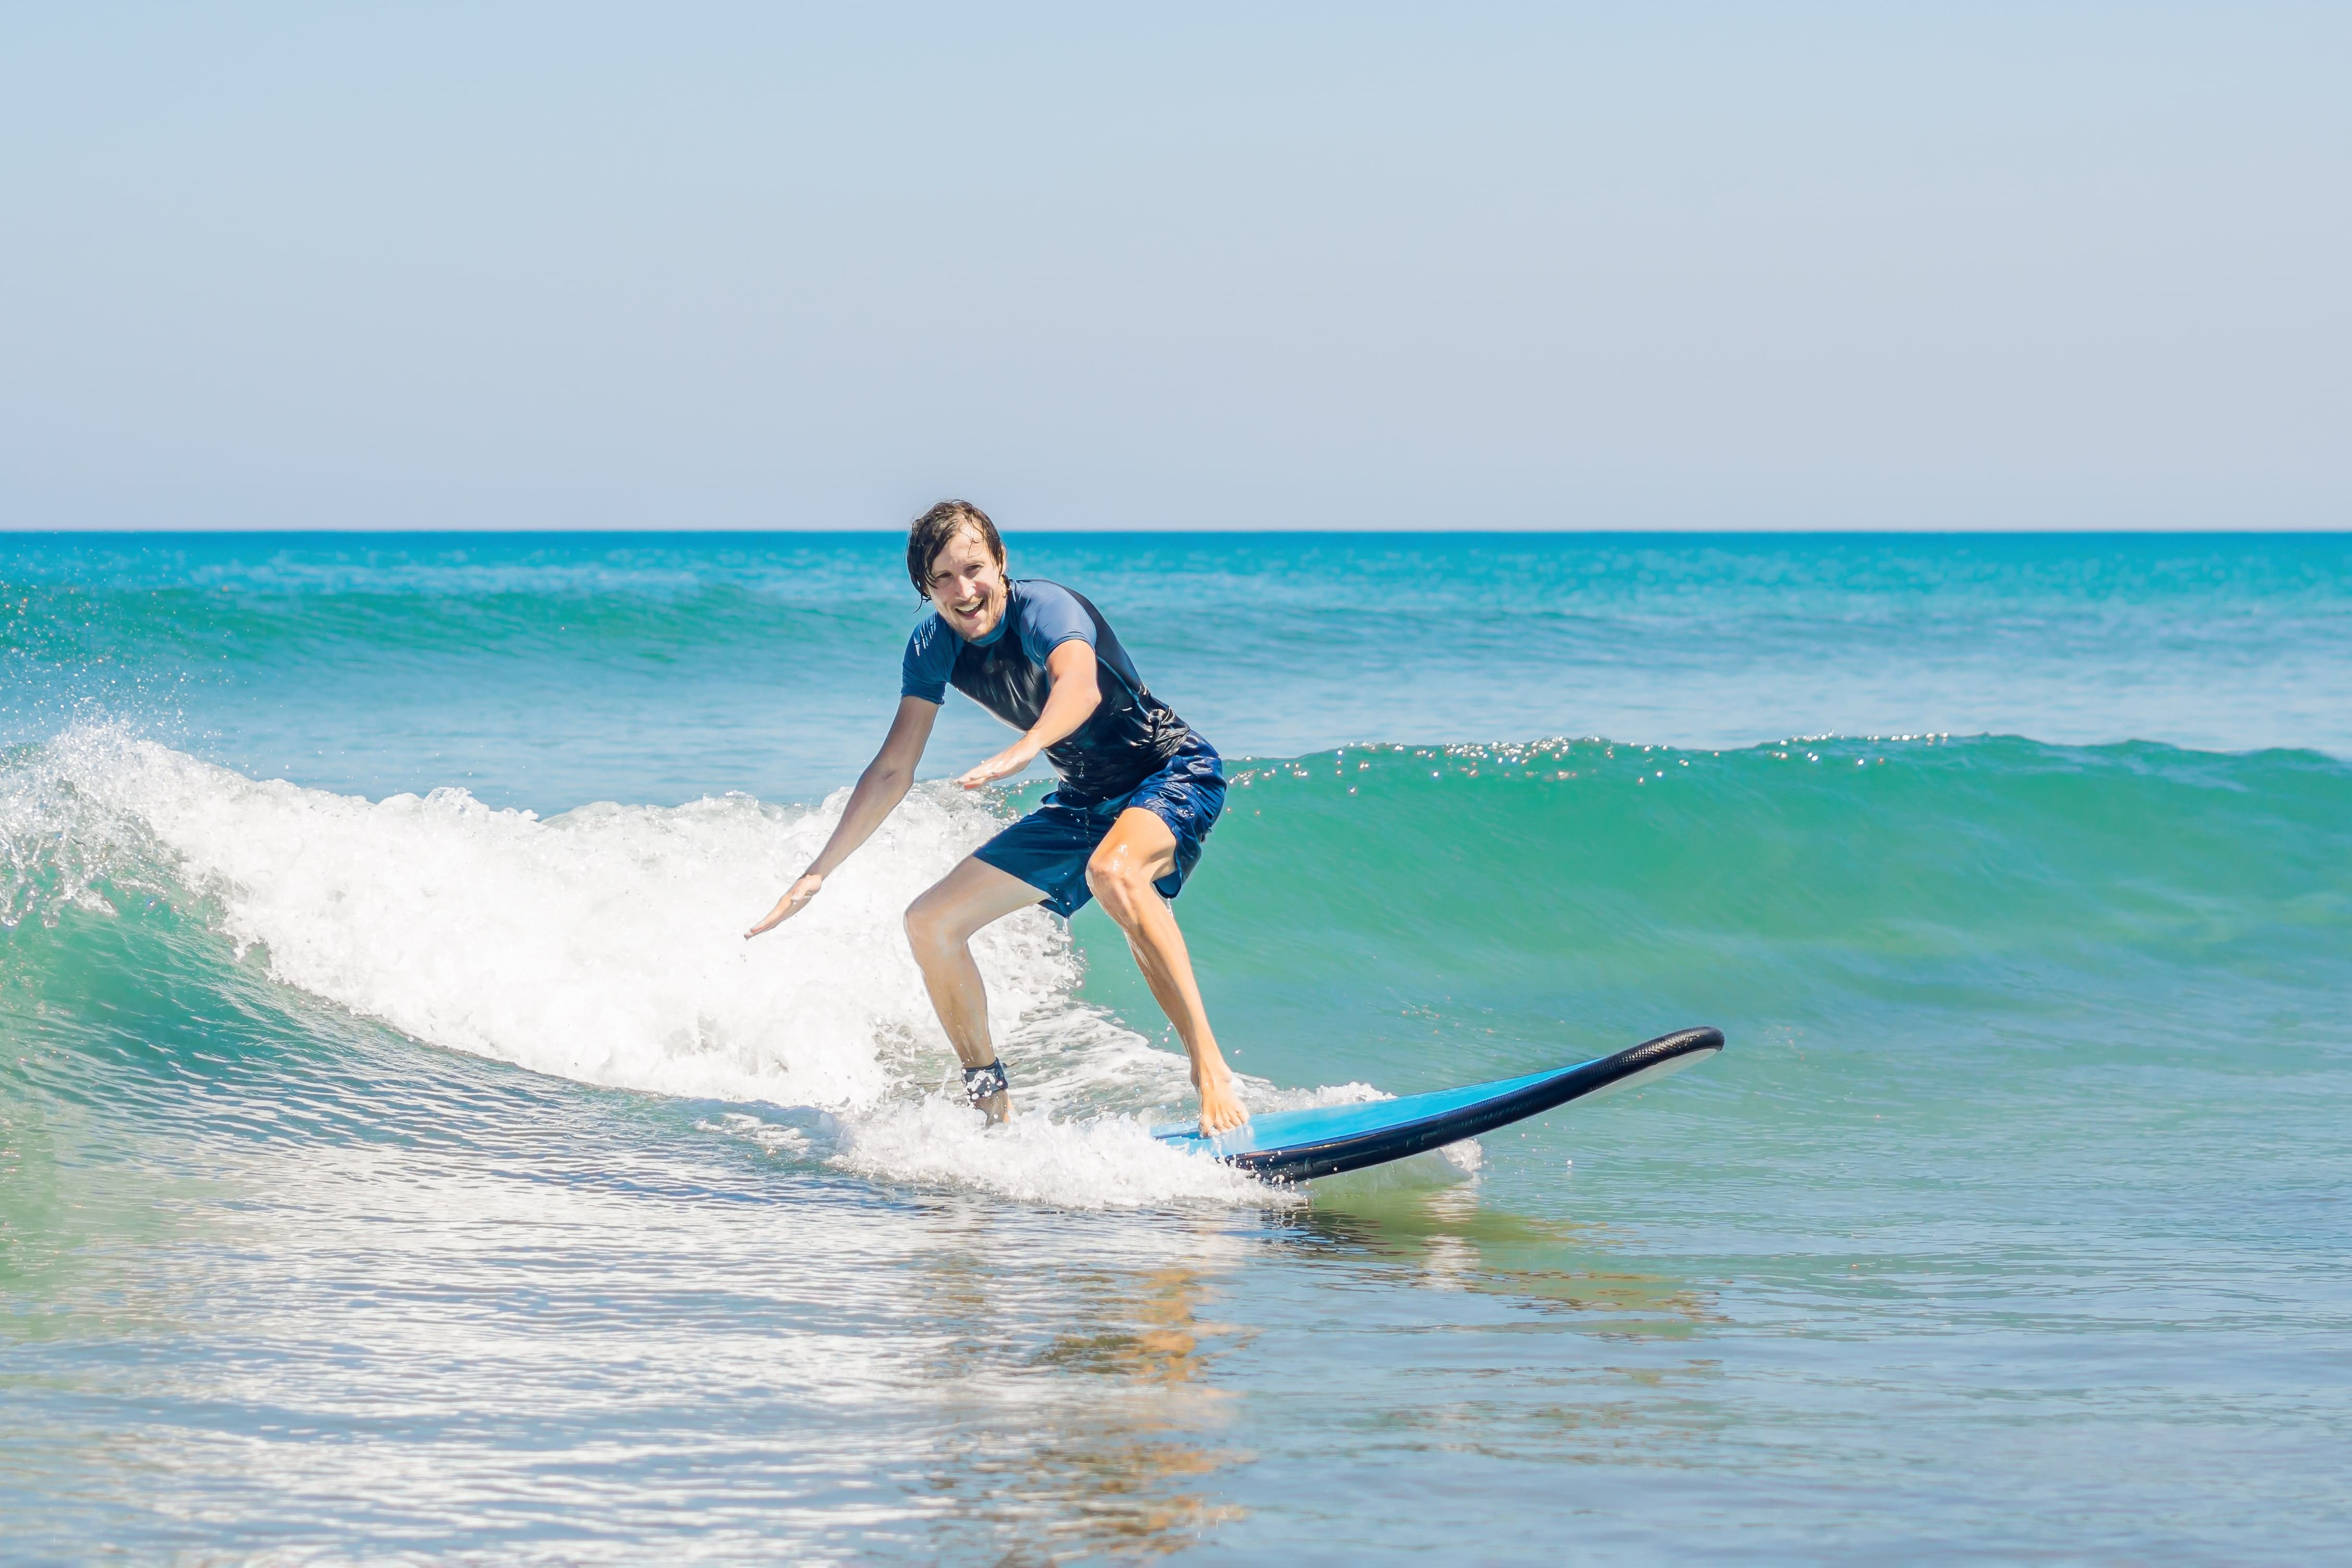 Surf Lesson- Private Solo Surf Camp 4 hours- Venice Beach - Image 1